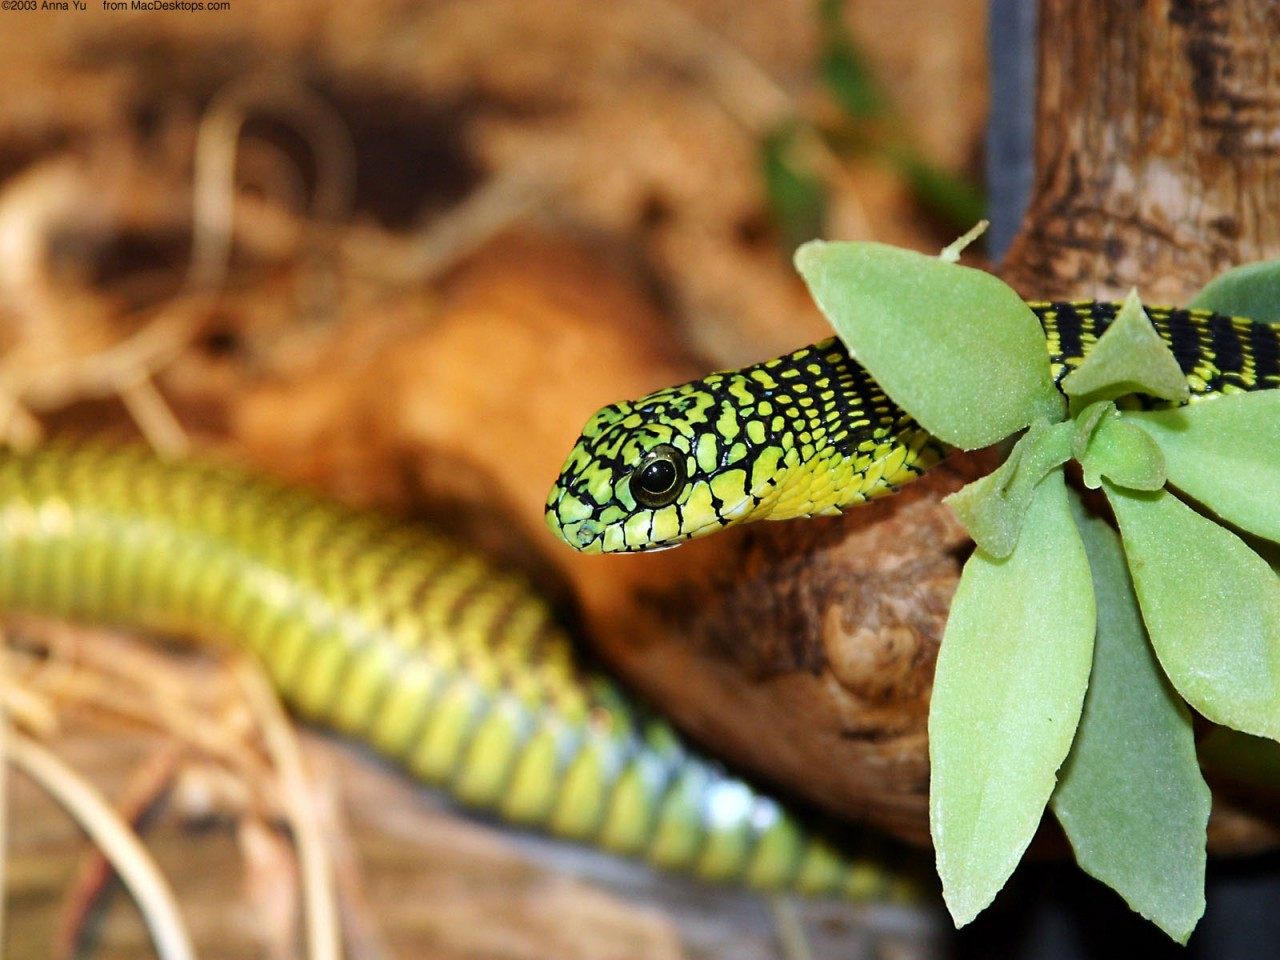 Hd Cute Animal Wallpapers 1080p A Green Snake 2 Wallpapers Hd Wallpapers Id 4931